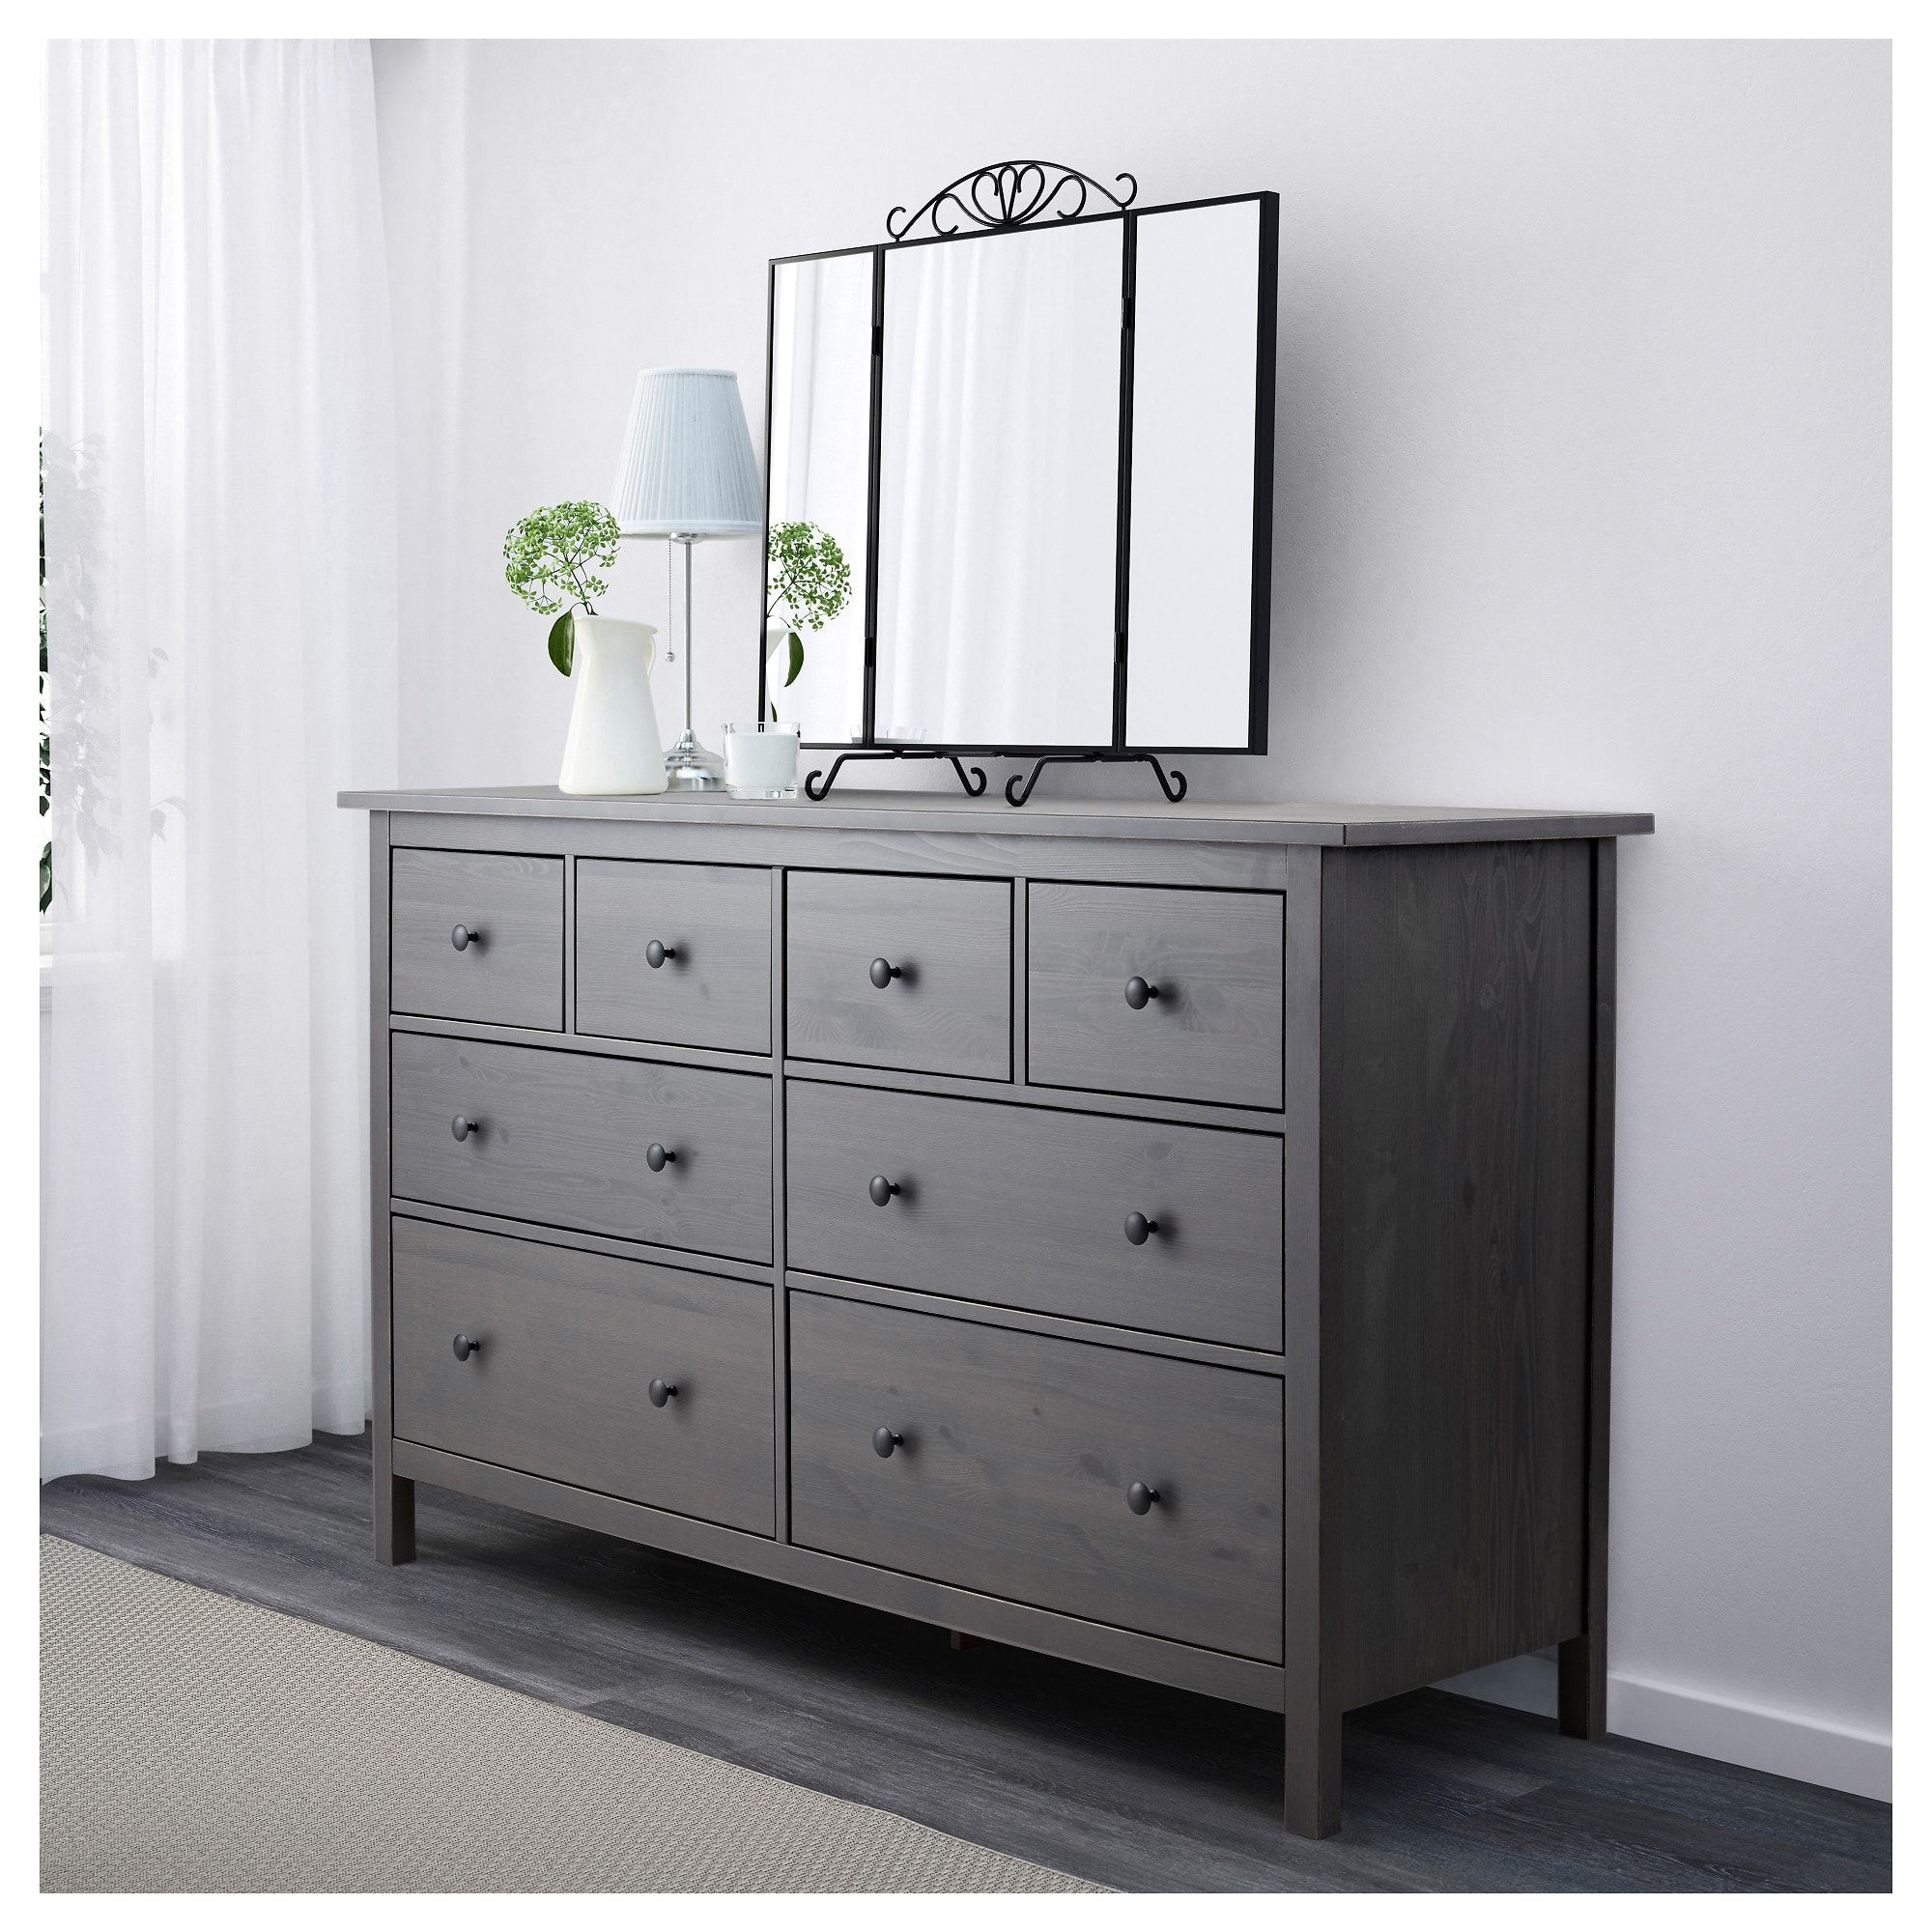 IKEA HEMNES Dark Gray Gray Stained 8-drawer dresser in 2019 ...